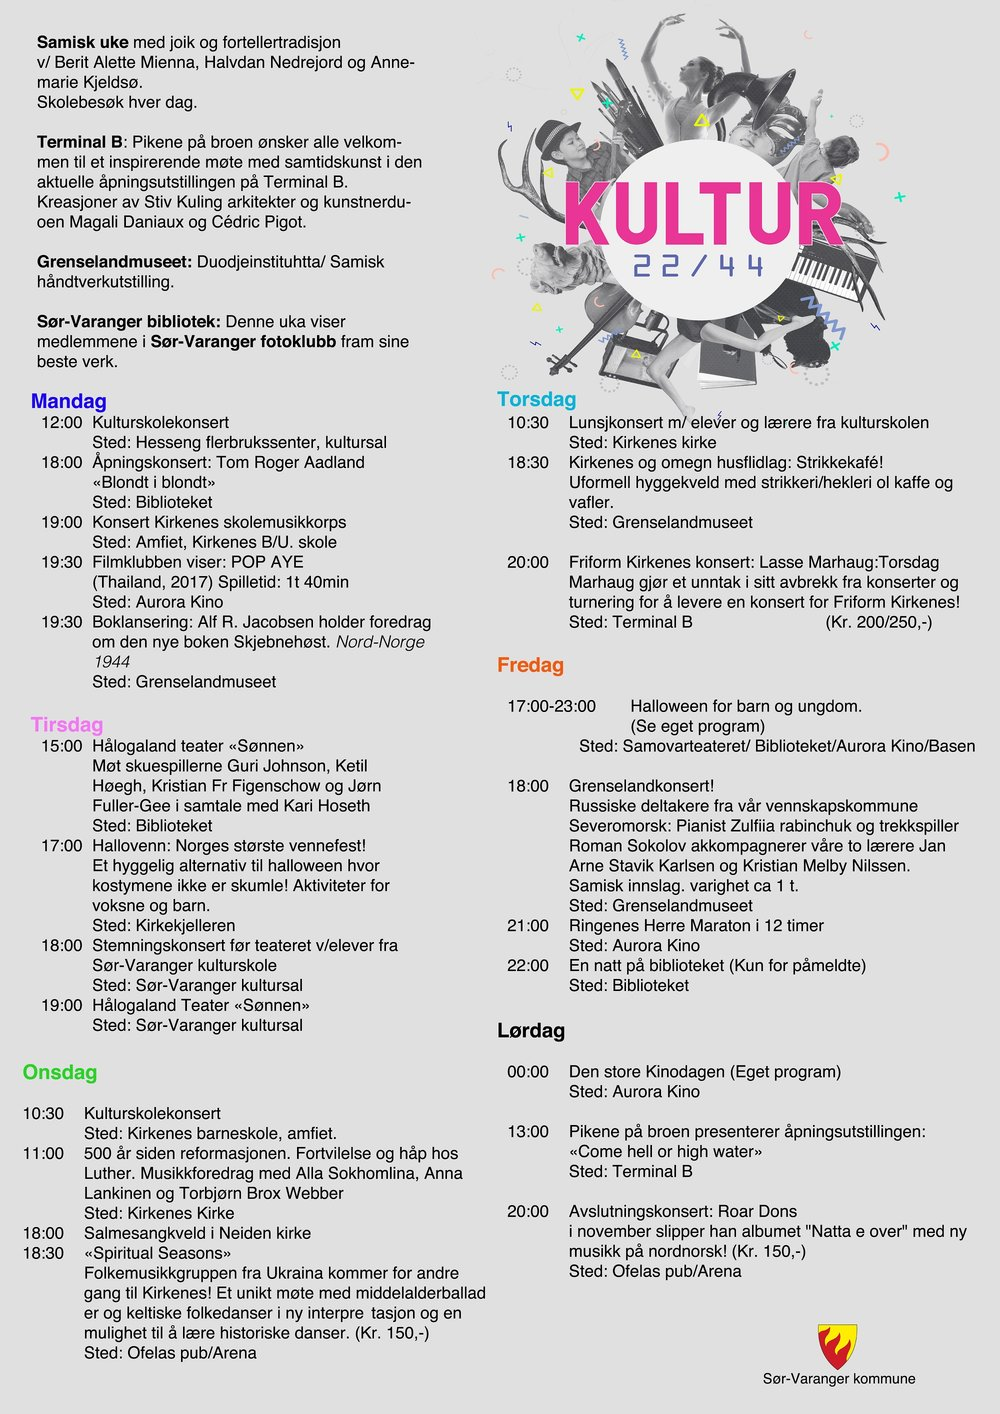 Fullt program for kulturuka 44.